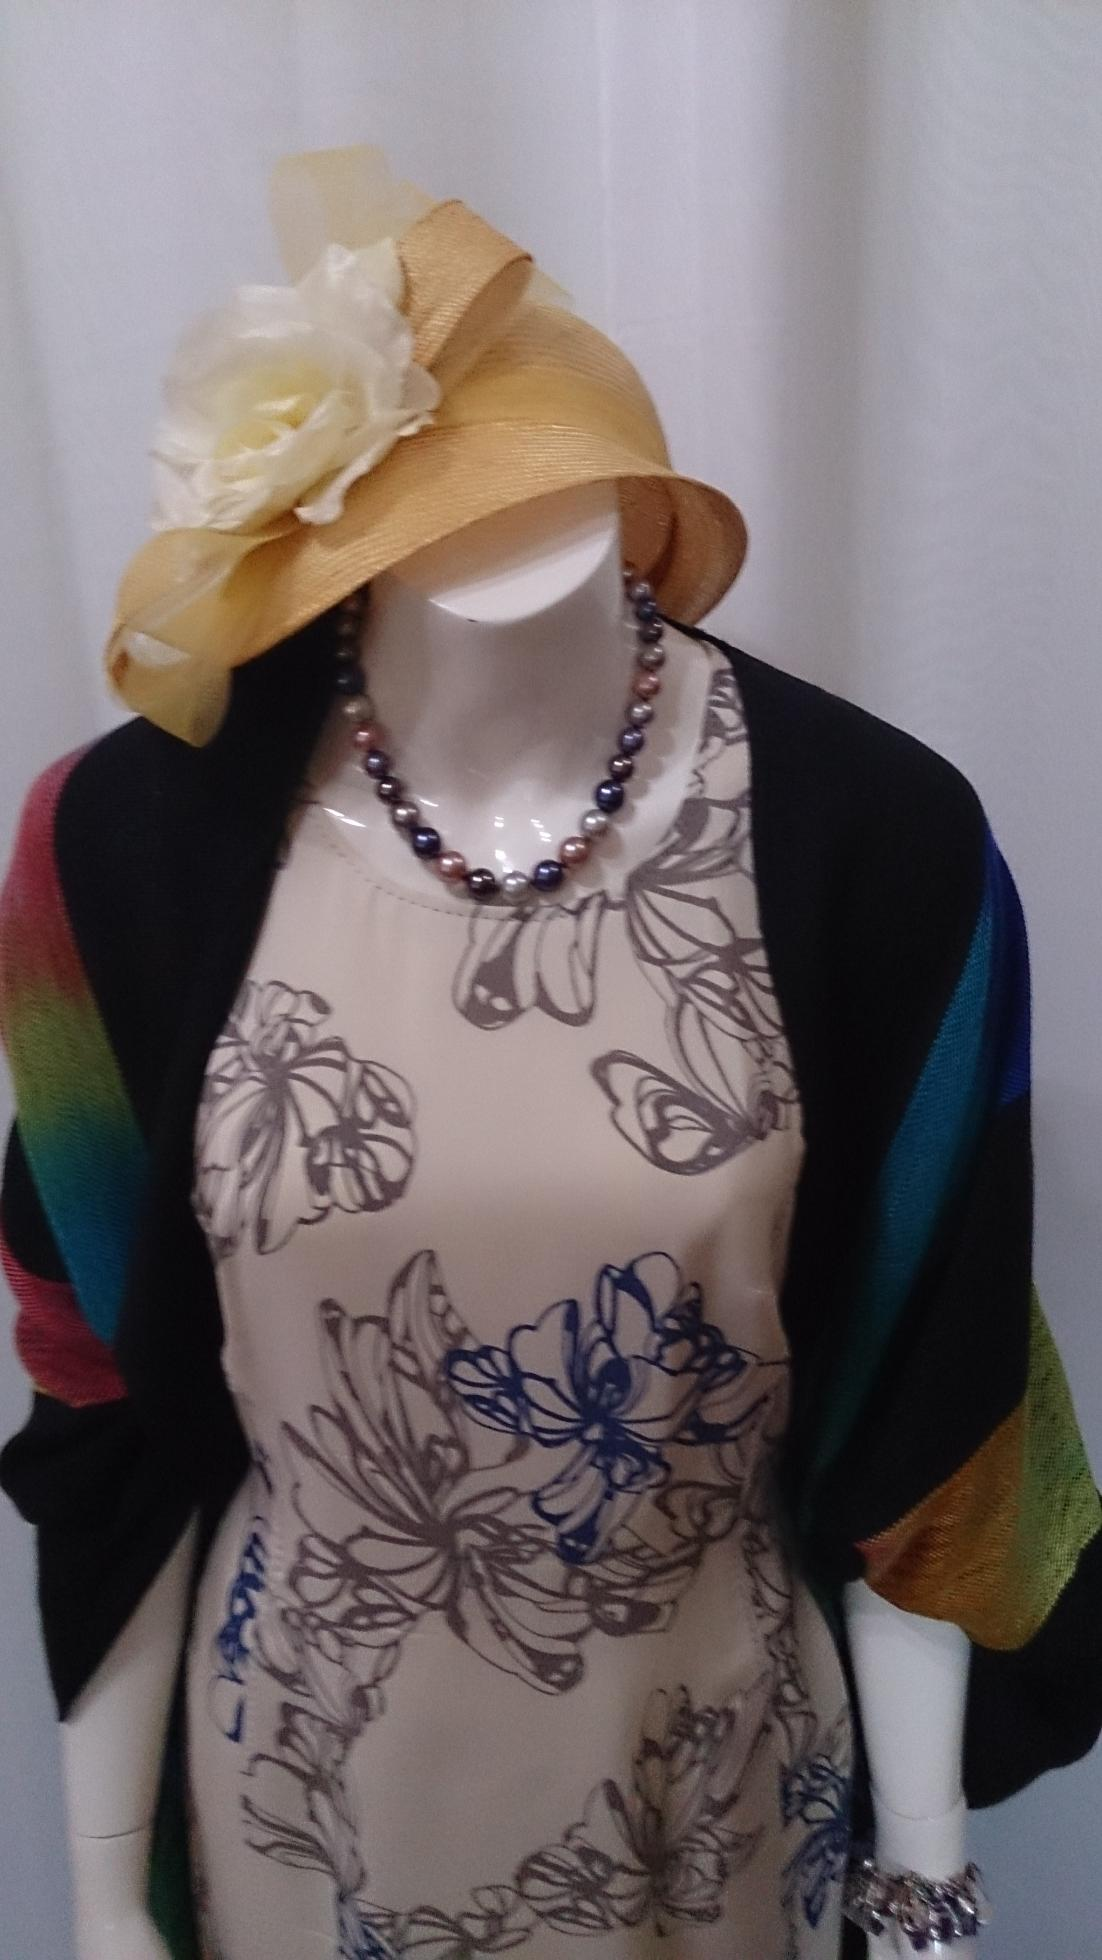 2015-06-02 EE Rainbow Dress CE Necklace with Hat